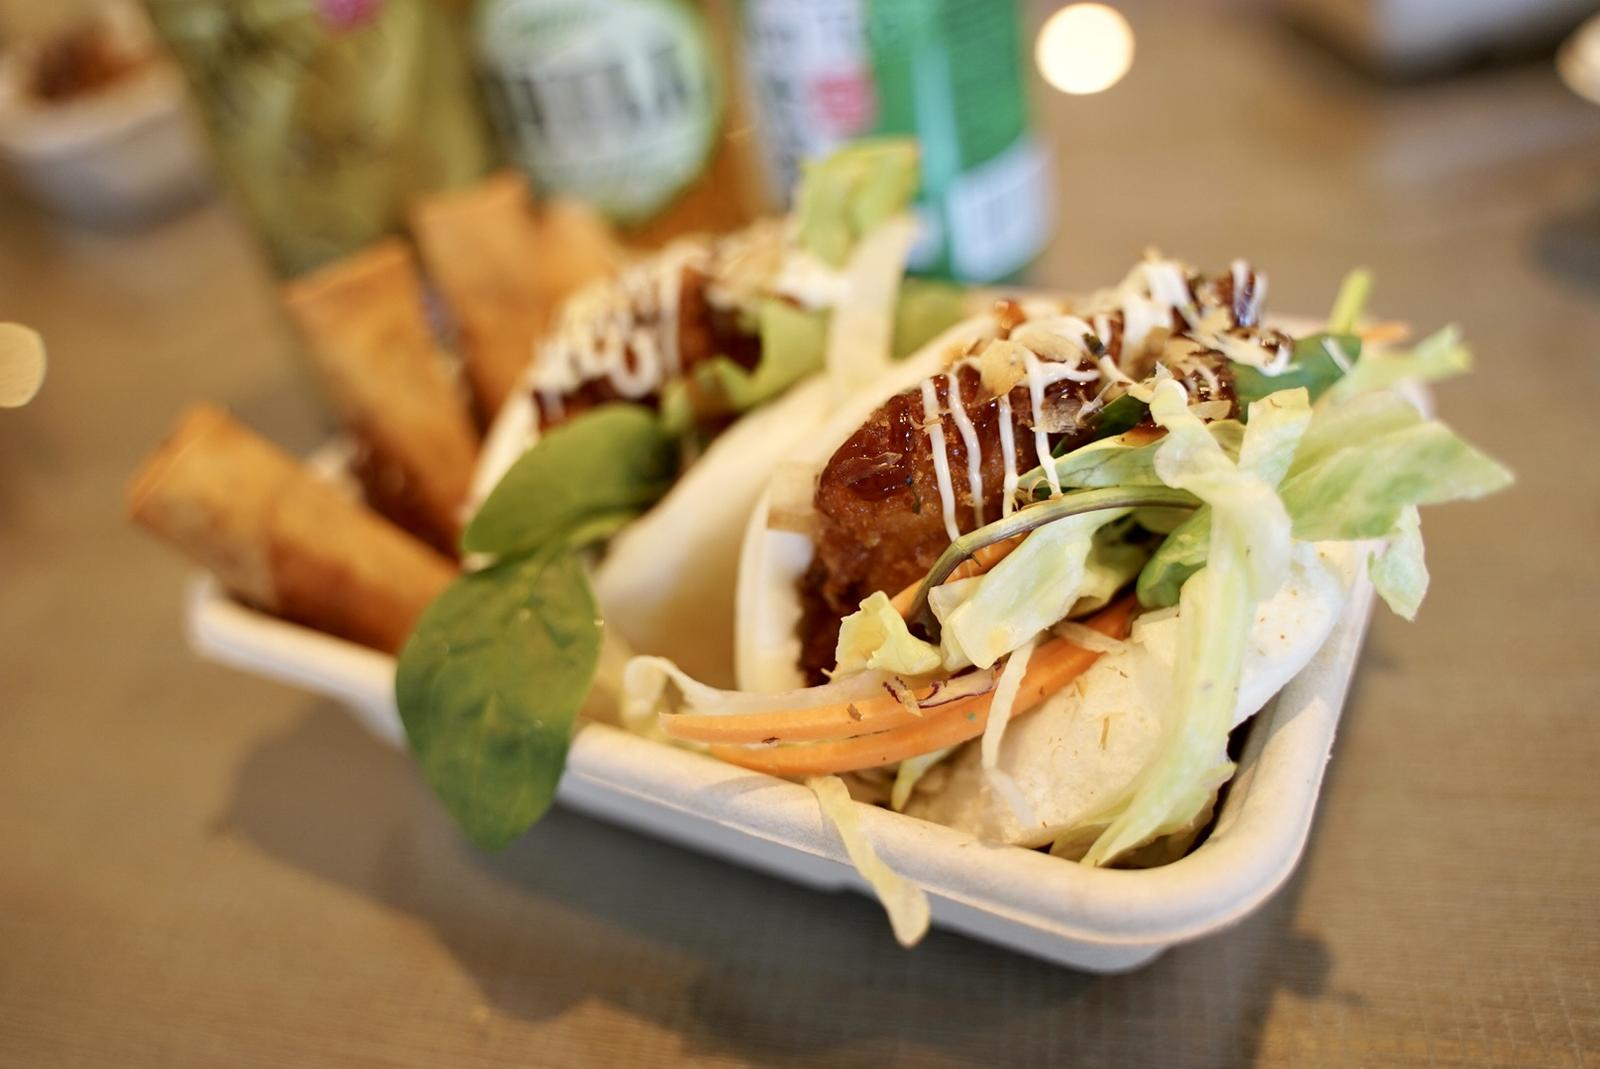 Katsu Bao Sliders Of the Day with Veggie Spring Rolls